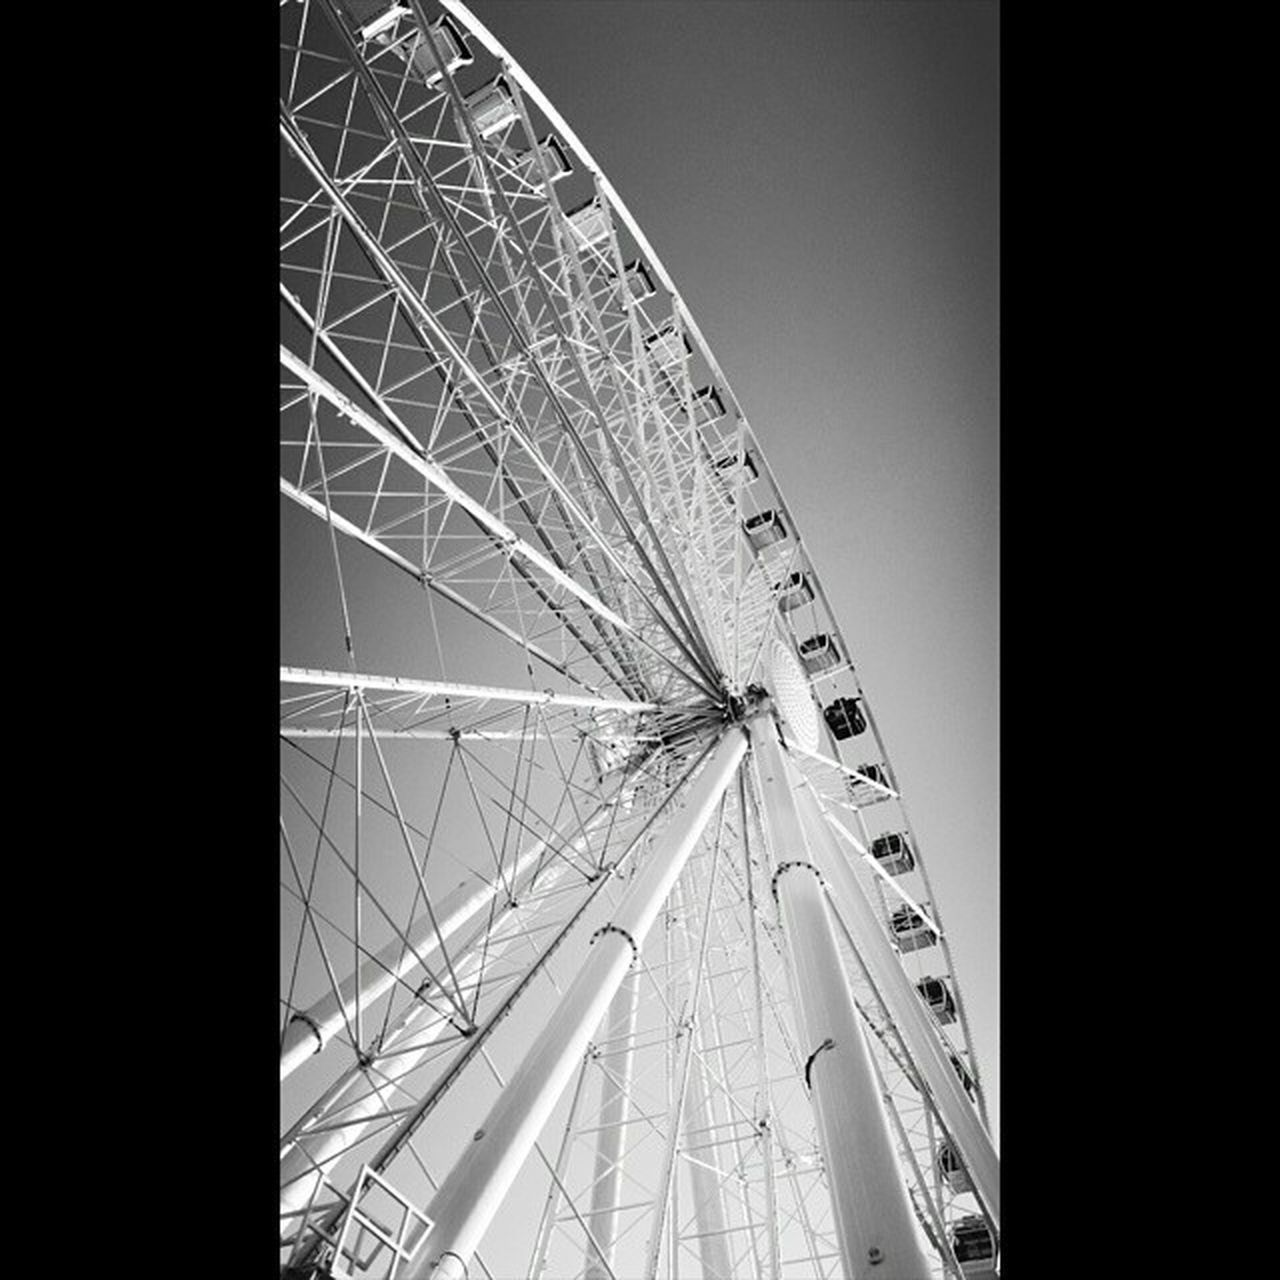 amusement park, arts culture and entertainment, ferris wheel, big wheel, low angle view, no people, amusement park ride, day, outdoors, clear sky, sky